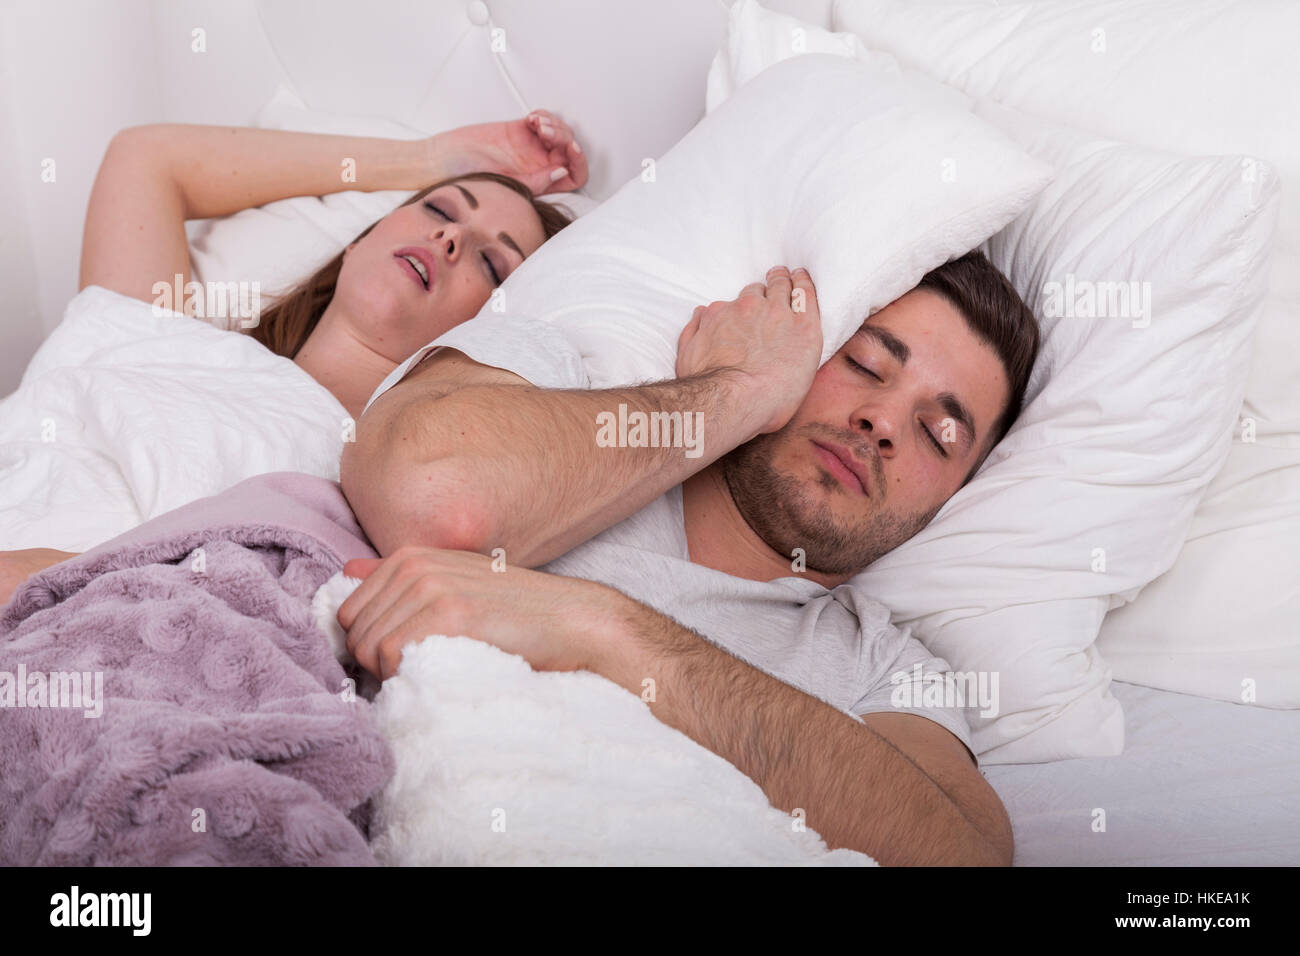 Stock Photo Man Has Problems To Fall Asleep While Woman Snores In Bed Man  Has Problems